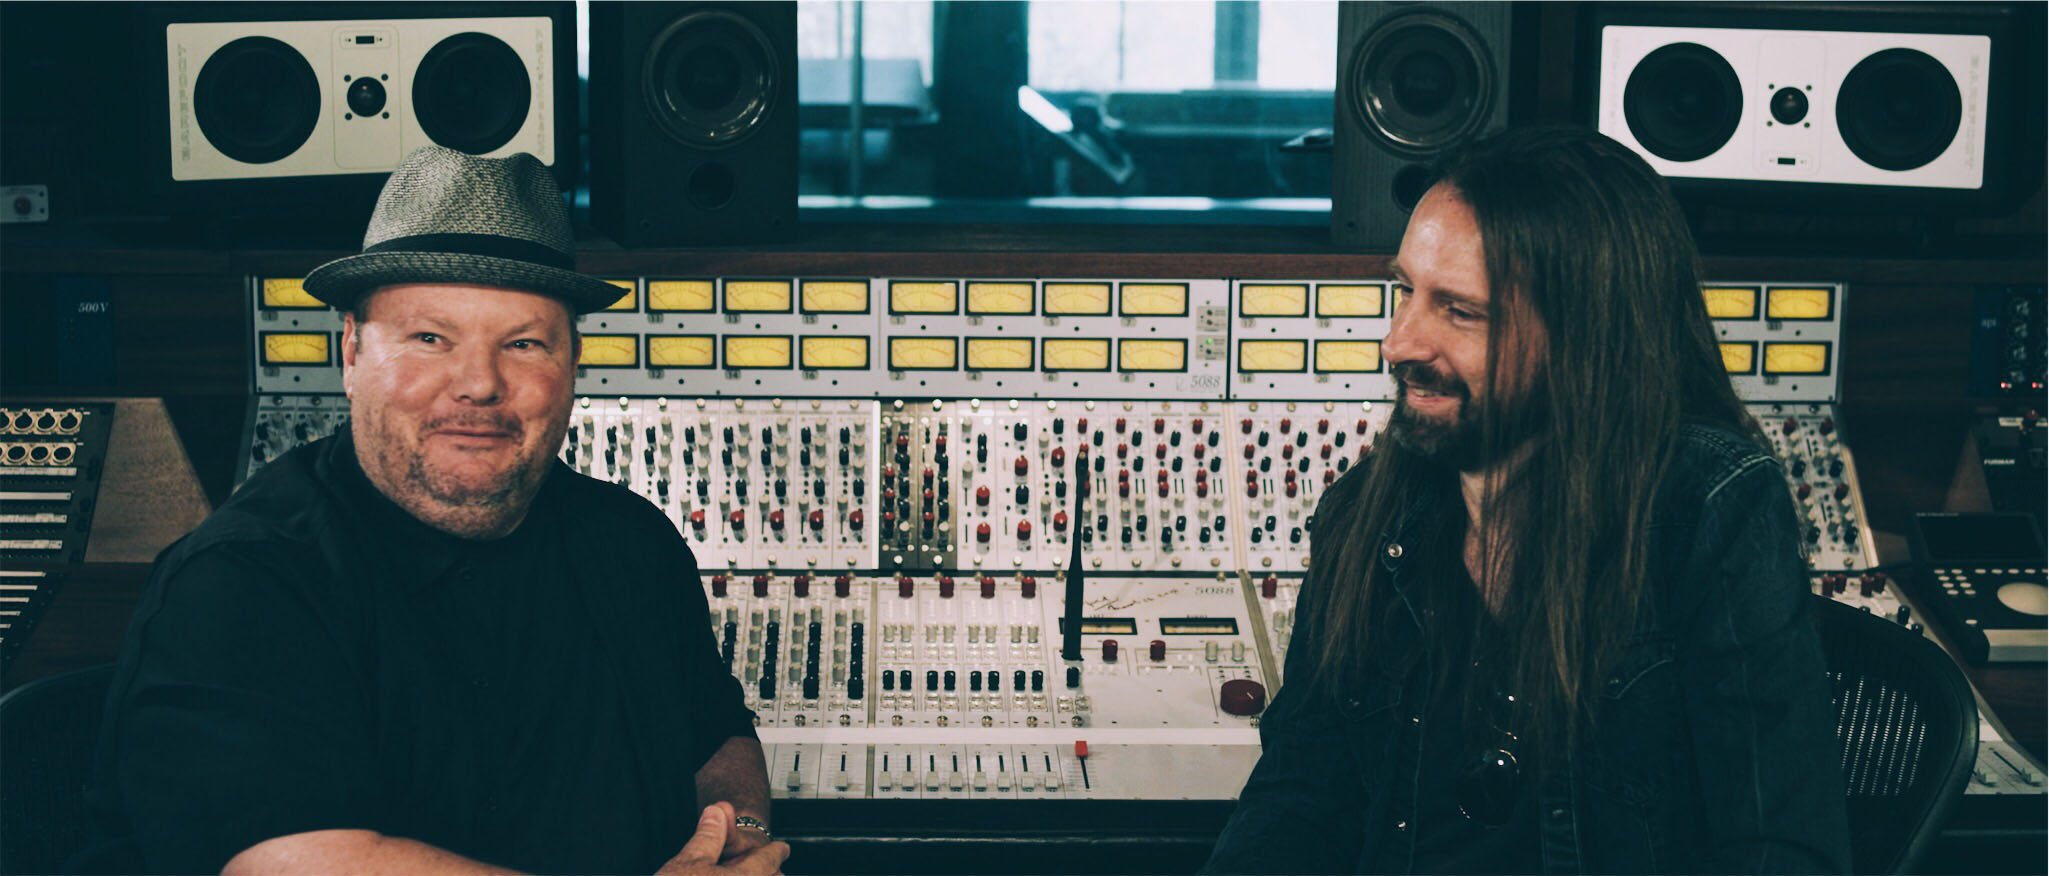 Interview with Christopher Cross discussing mixing his new record and talking about the sound of the Neve 5088